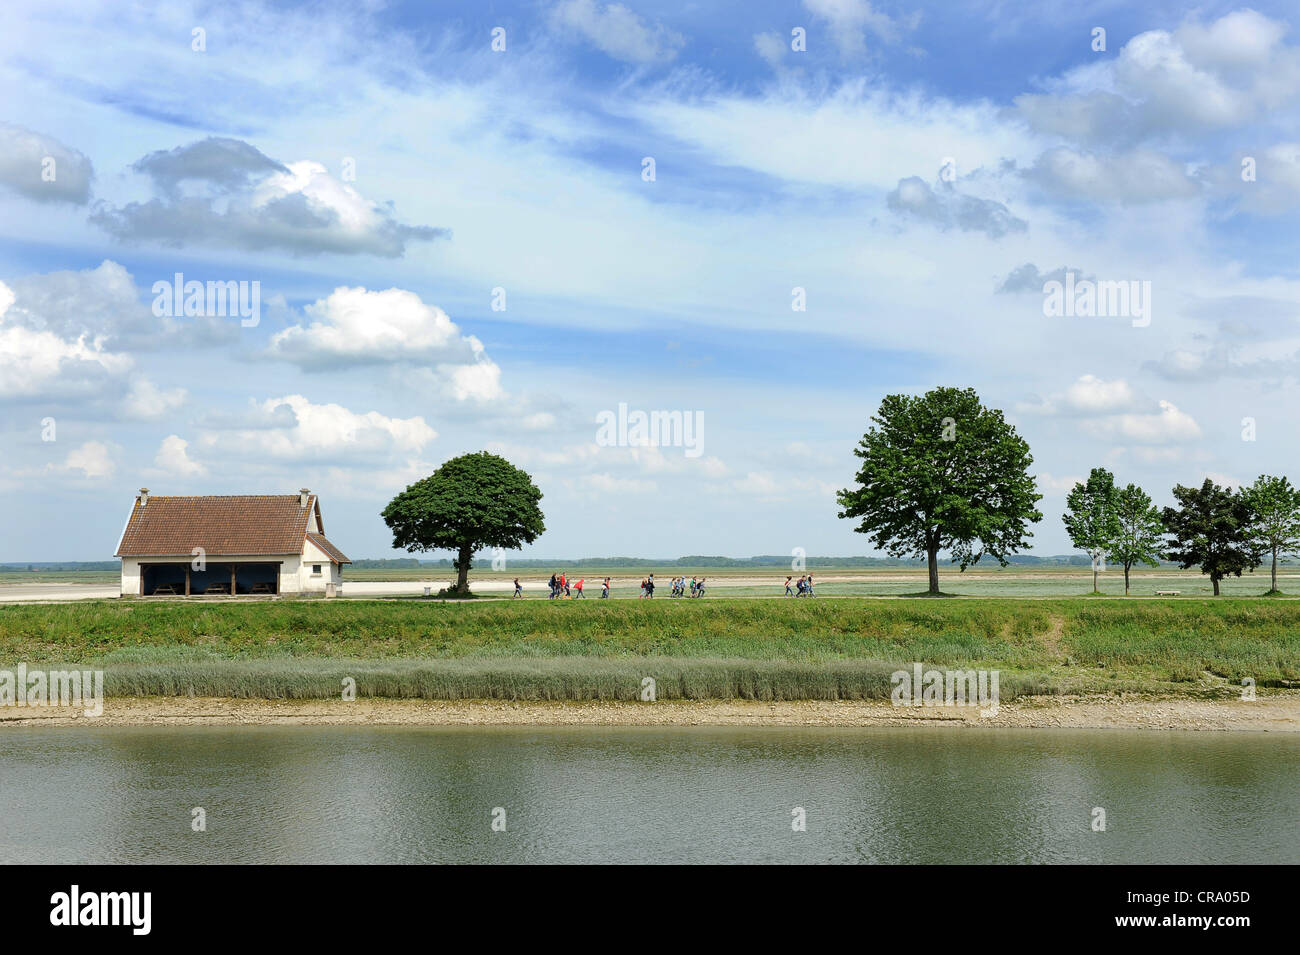 River Somme St Valery Sur Somme Picardy France - Stock Image